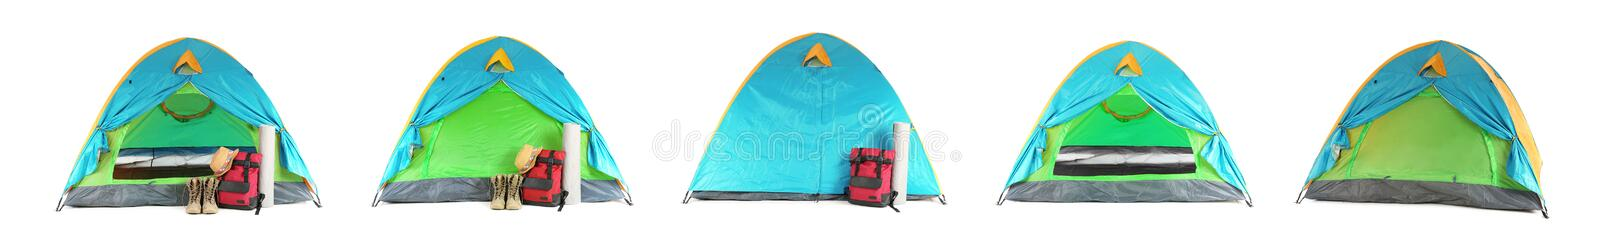 Set of comfortable tents and different camping equipment on white. Banner design. Set of comfortable tents and different camping equipment on white background royalty free stock image